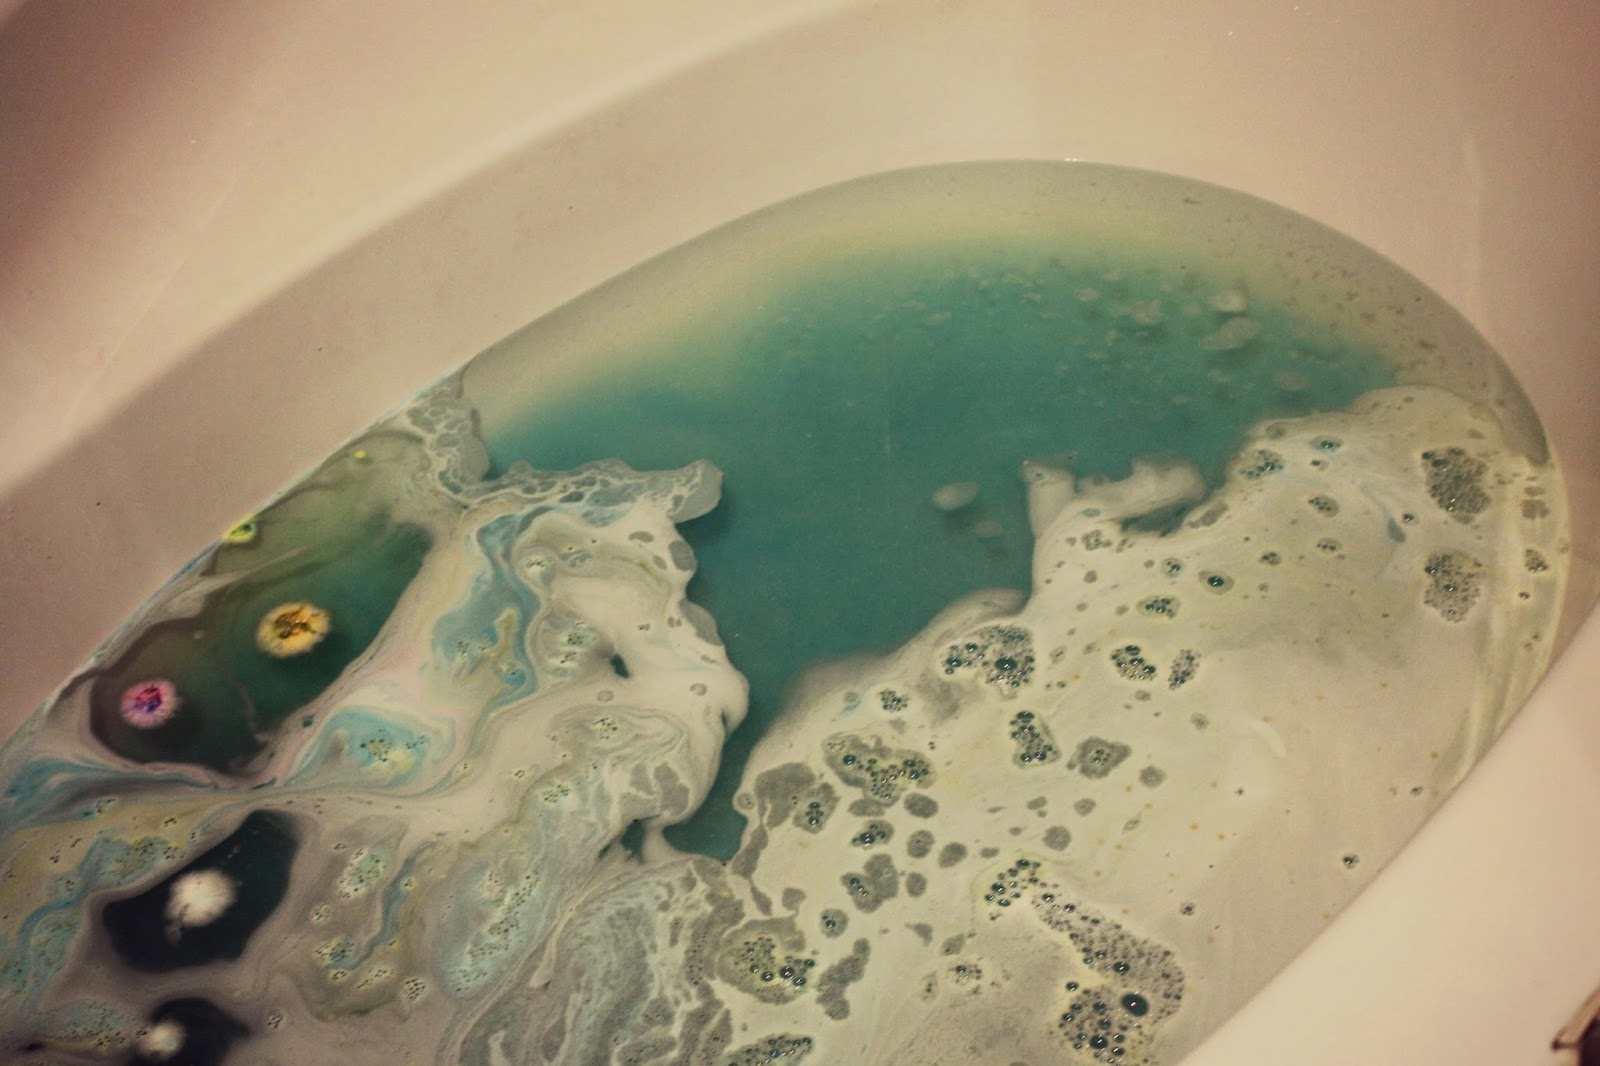 Prettiest bath bombs